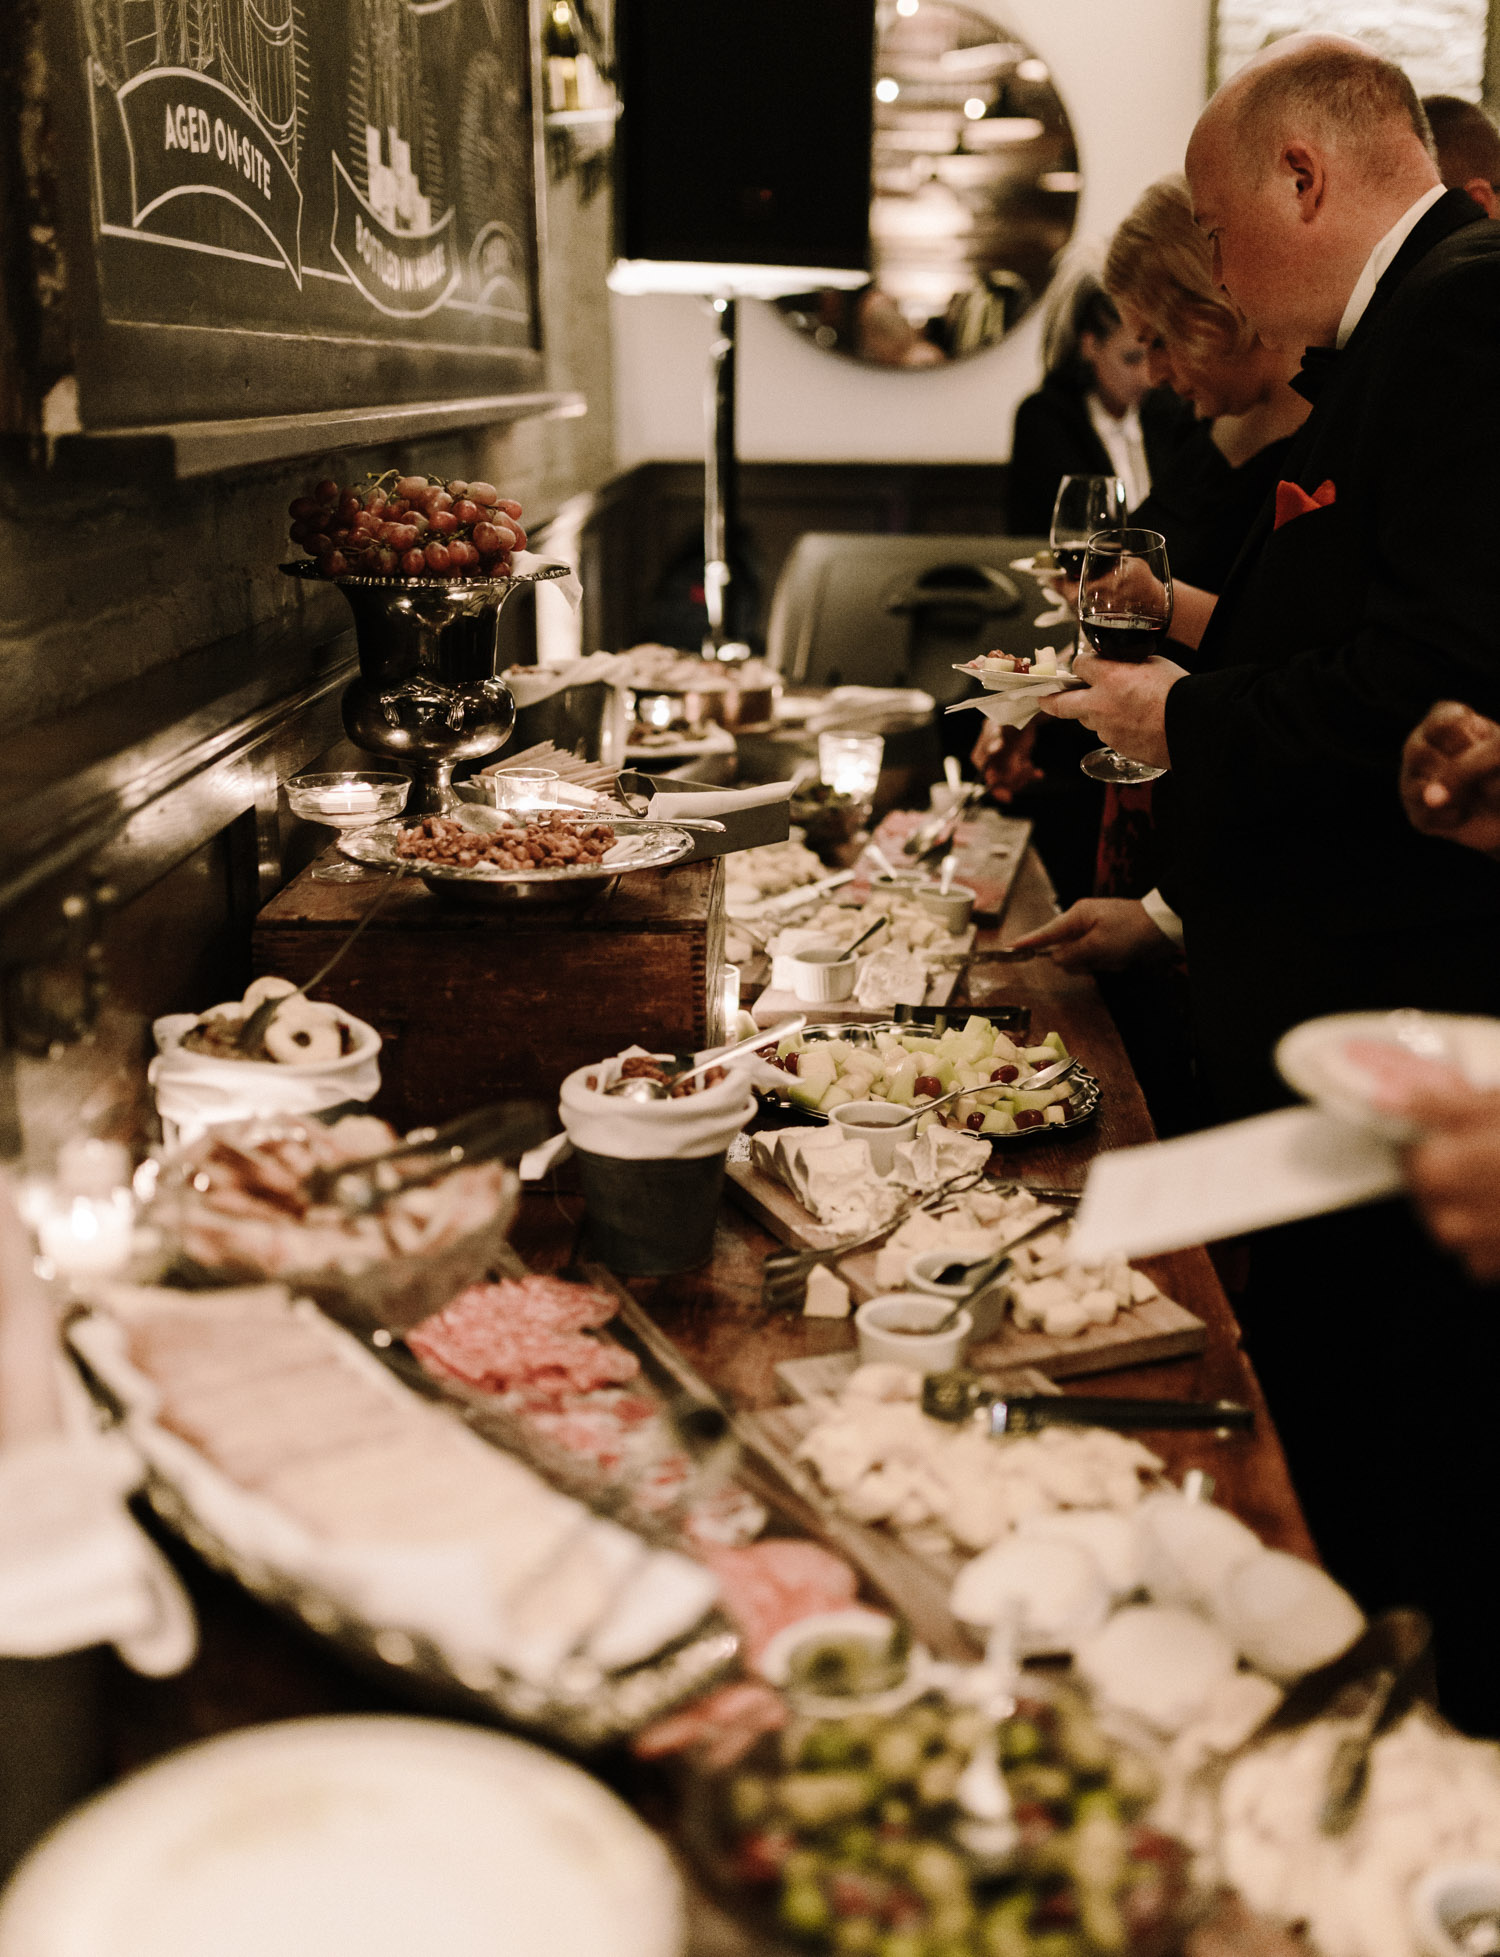 Guests line up to enjoy an abundant charcuterie spread at a Brooklyn Winery wedding reception in New York City